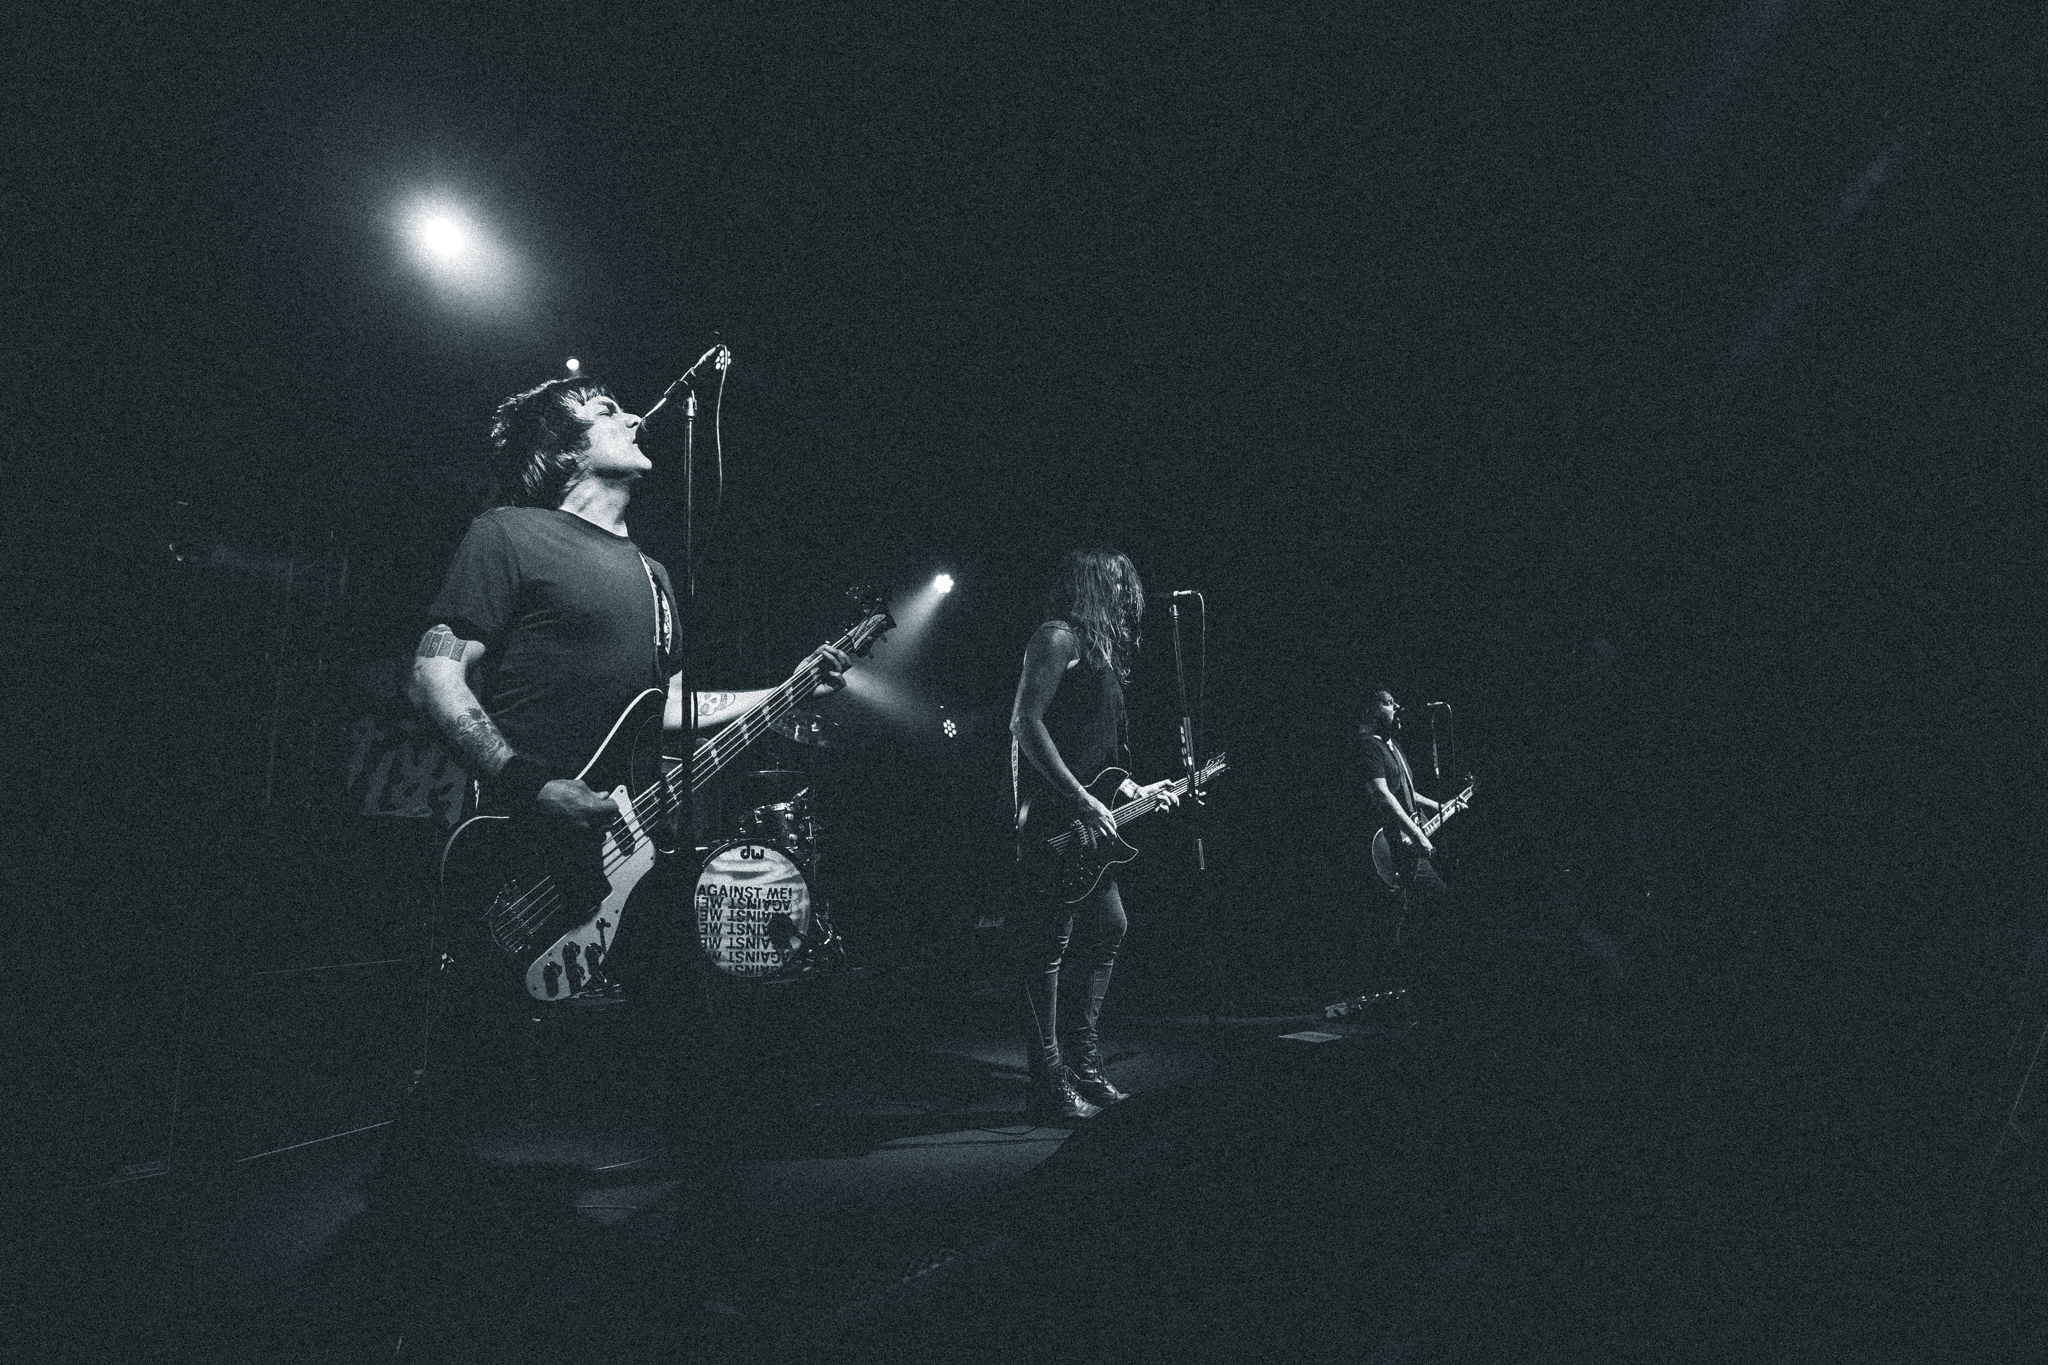 Mitch Lowe Photo - Against Me! - The Triffid-27.jpg